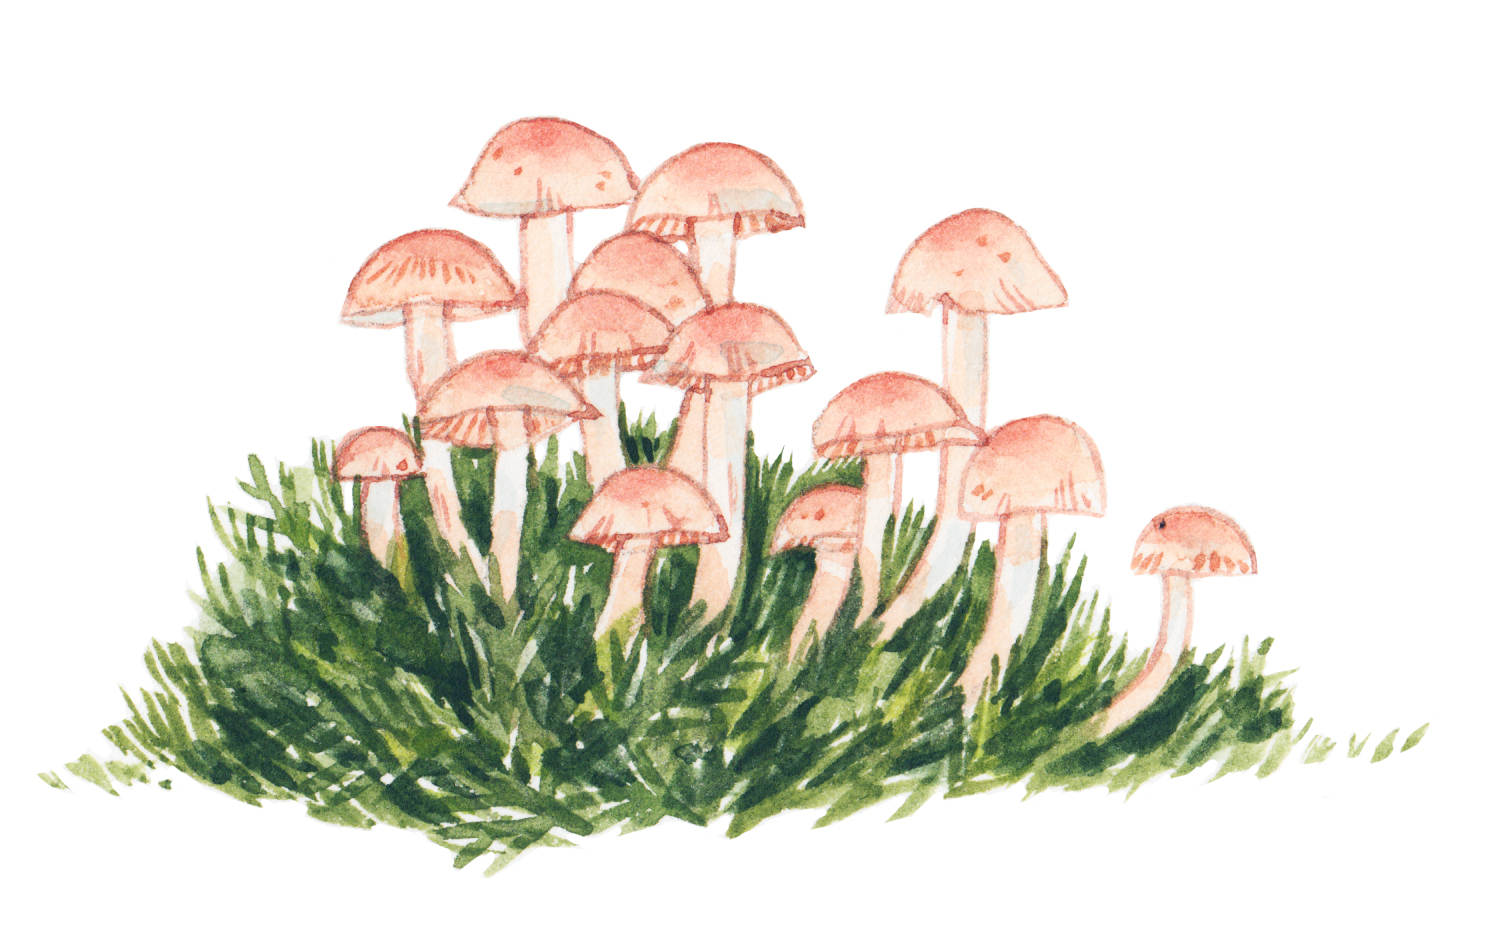 Justine-Wong-Illustration-Food-Mushrooms.jpg